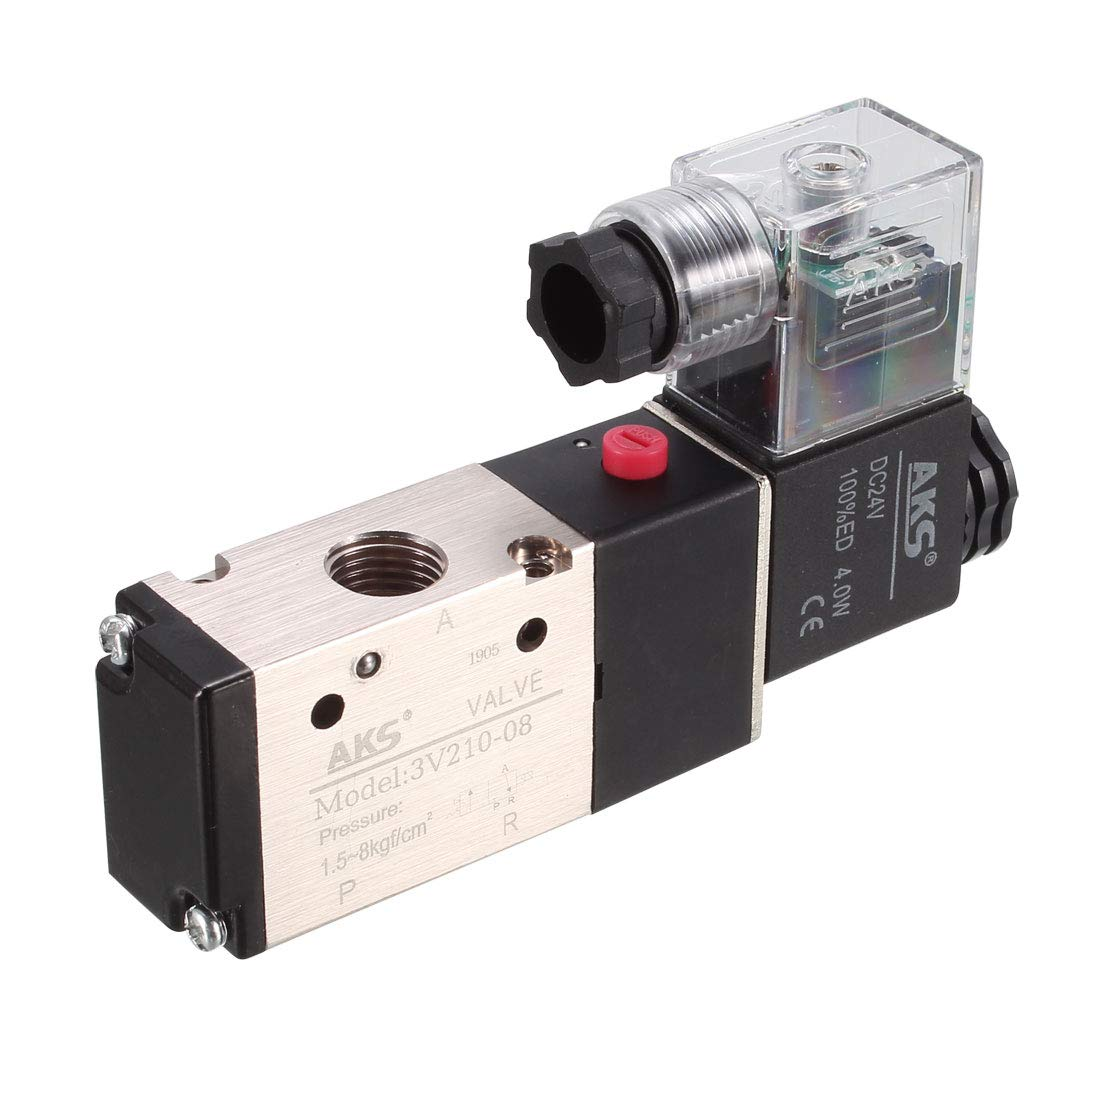 uxcell DC 24V 3 Way 2 Position 1//4 inches PT,Pneumatic Air Control NC Solenoid Valve Internally Single Piloted Acting Type,3V210-08